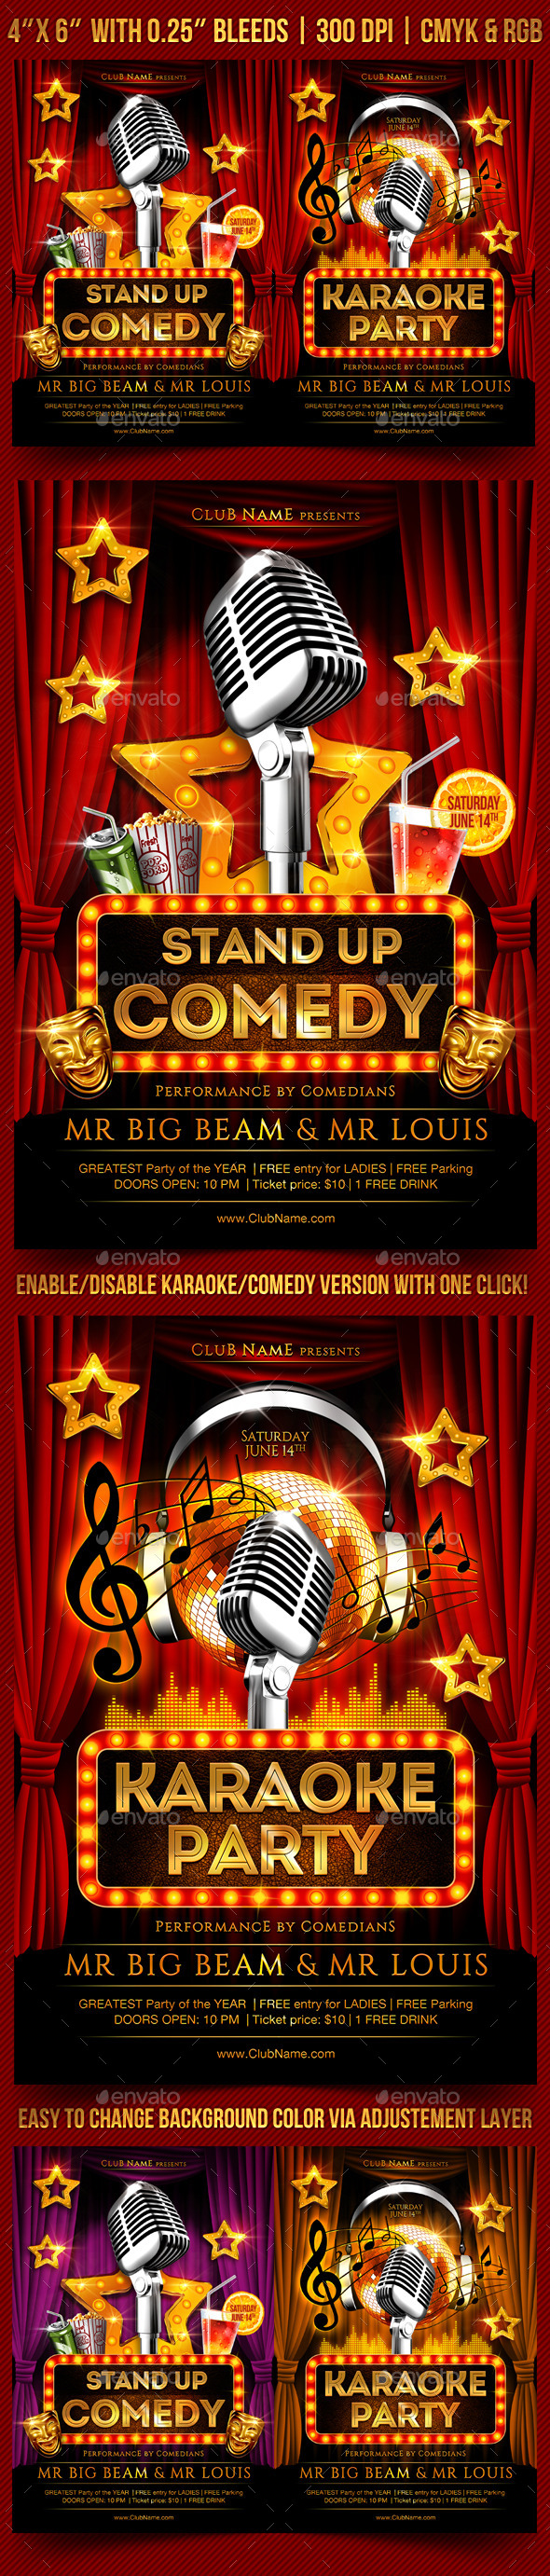 Comedy And Karaoke Flyer Template By Gugulanul Graphicriver